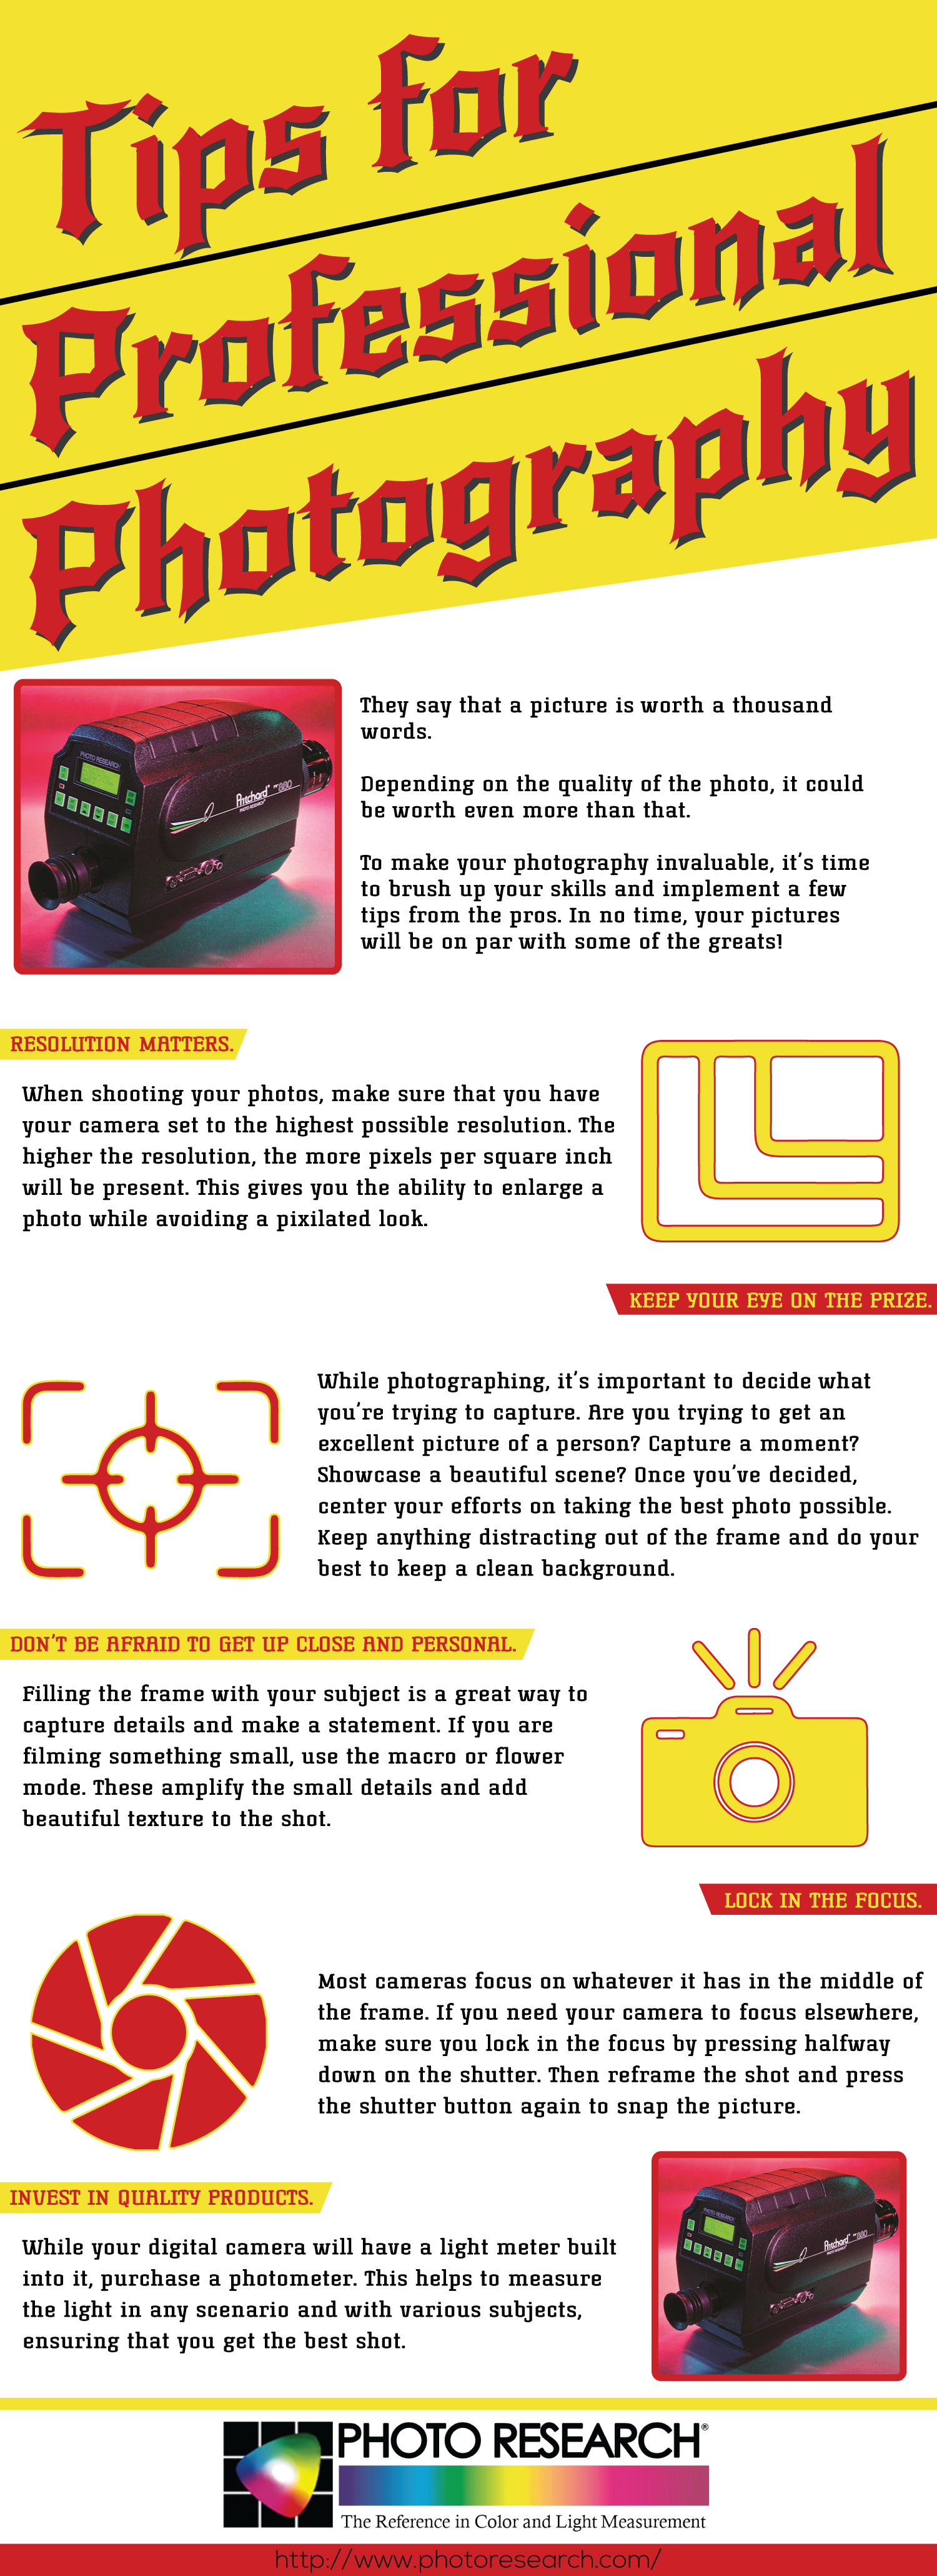 Tips for Professional Photography Infographic